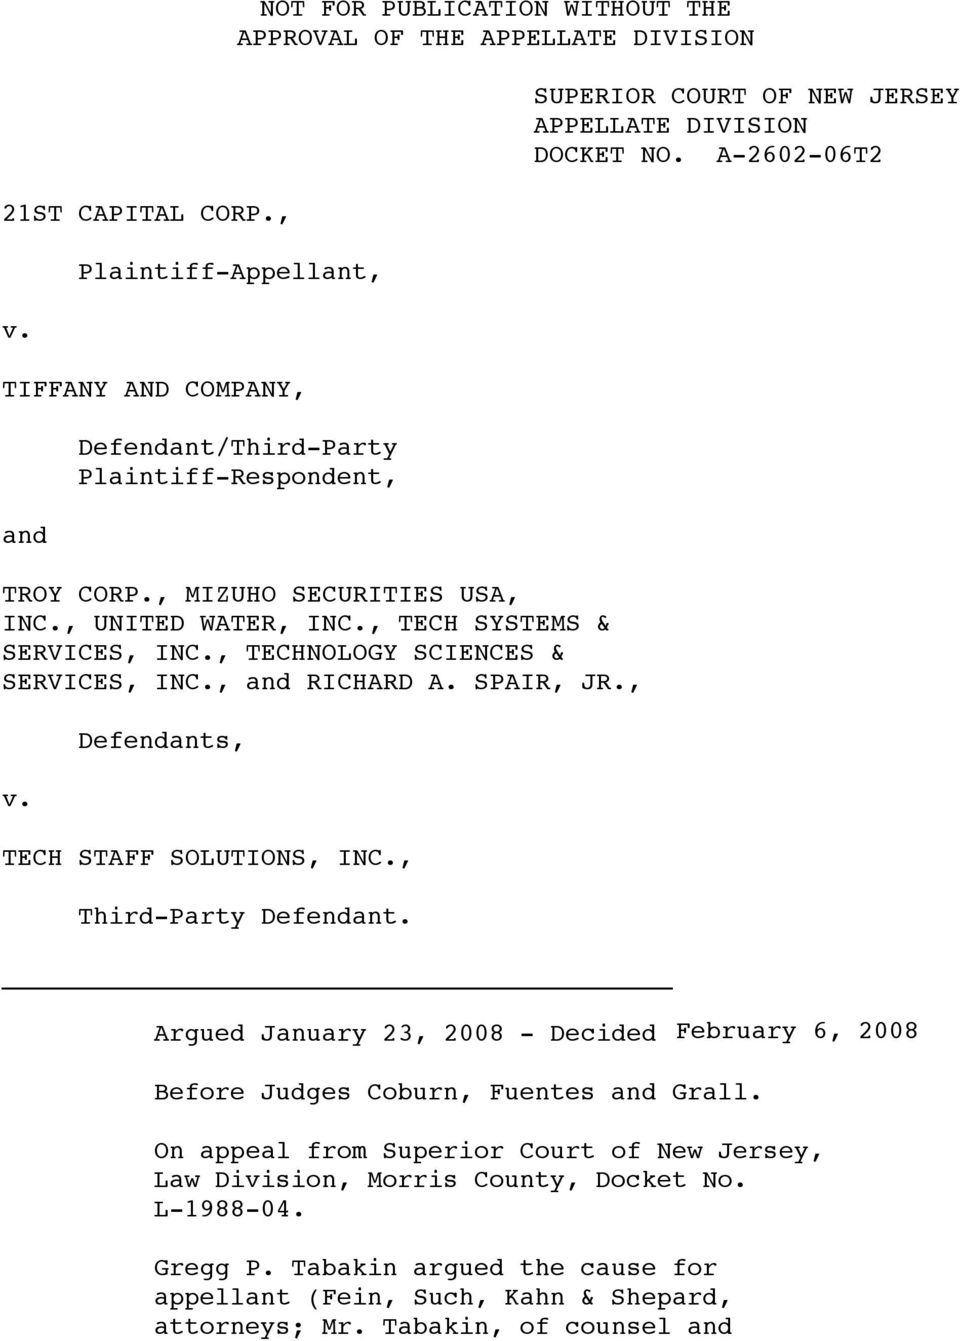 , Third-Party Defendant. SUPERIOR COURT OF NEW JERSEY APPELLATE DIVISION DOCKET NO. Argued January 23, 2008 - Decided February 6, 2008 Before Judges Coburn, Fuentes and Grall.